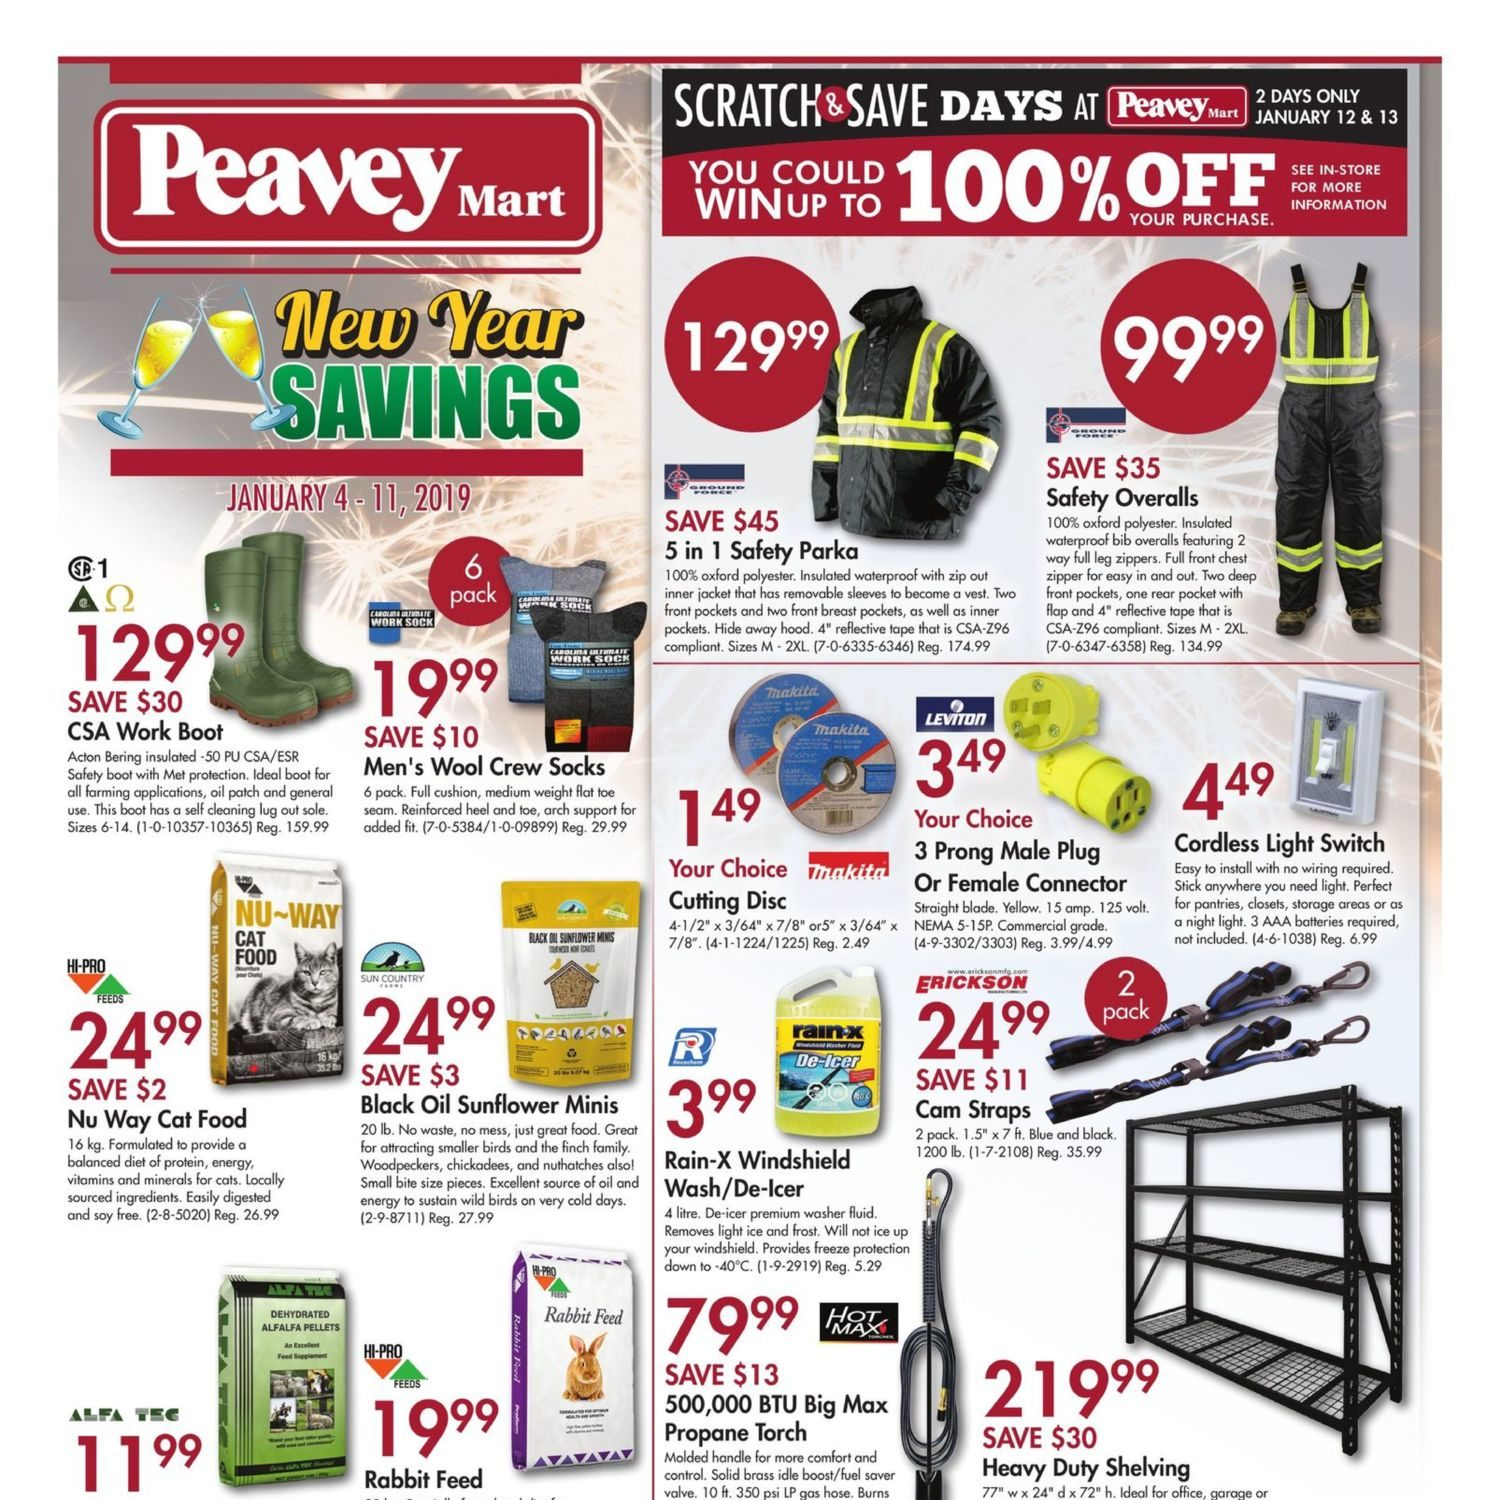 peaveymart weekly flyer new year savings jan 4 11